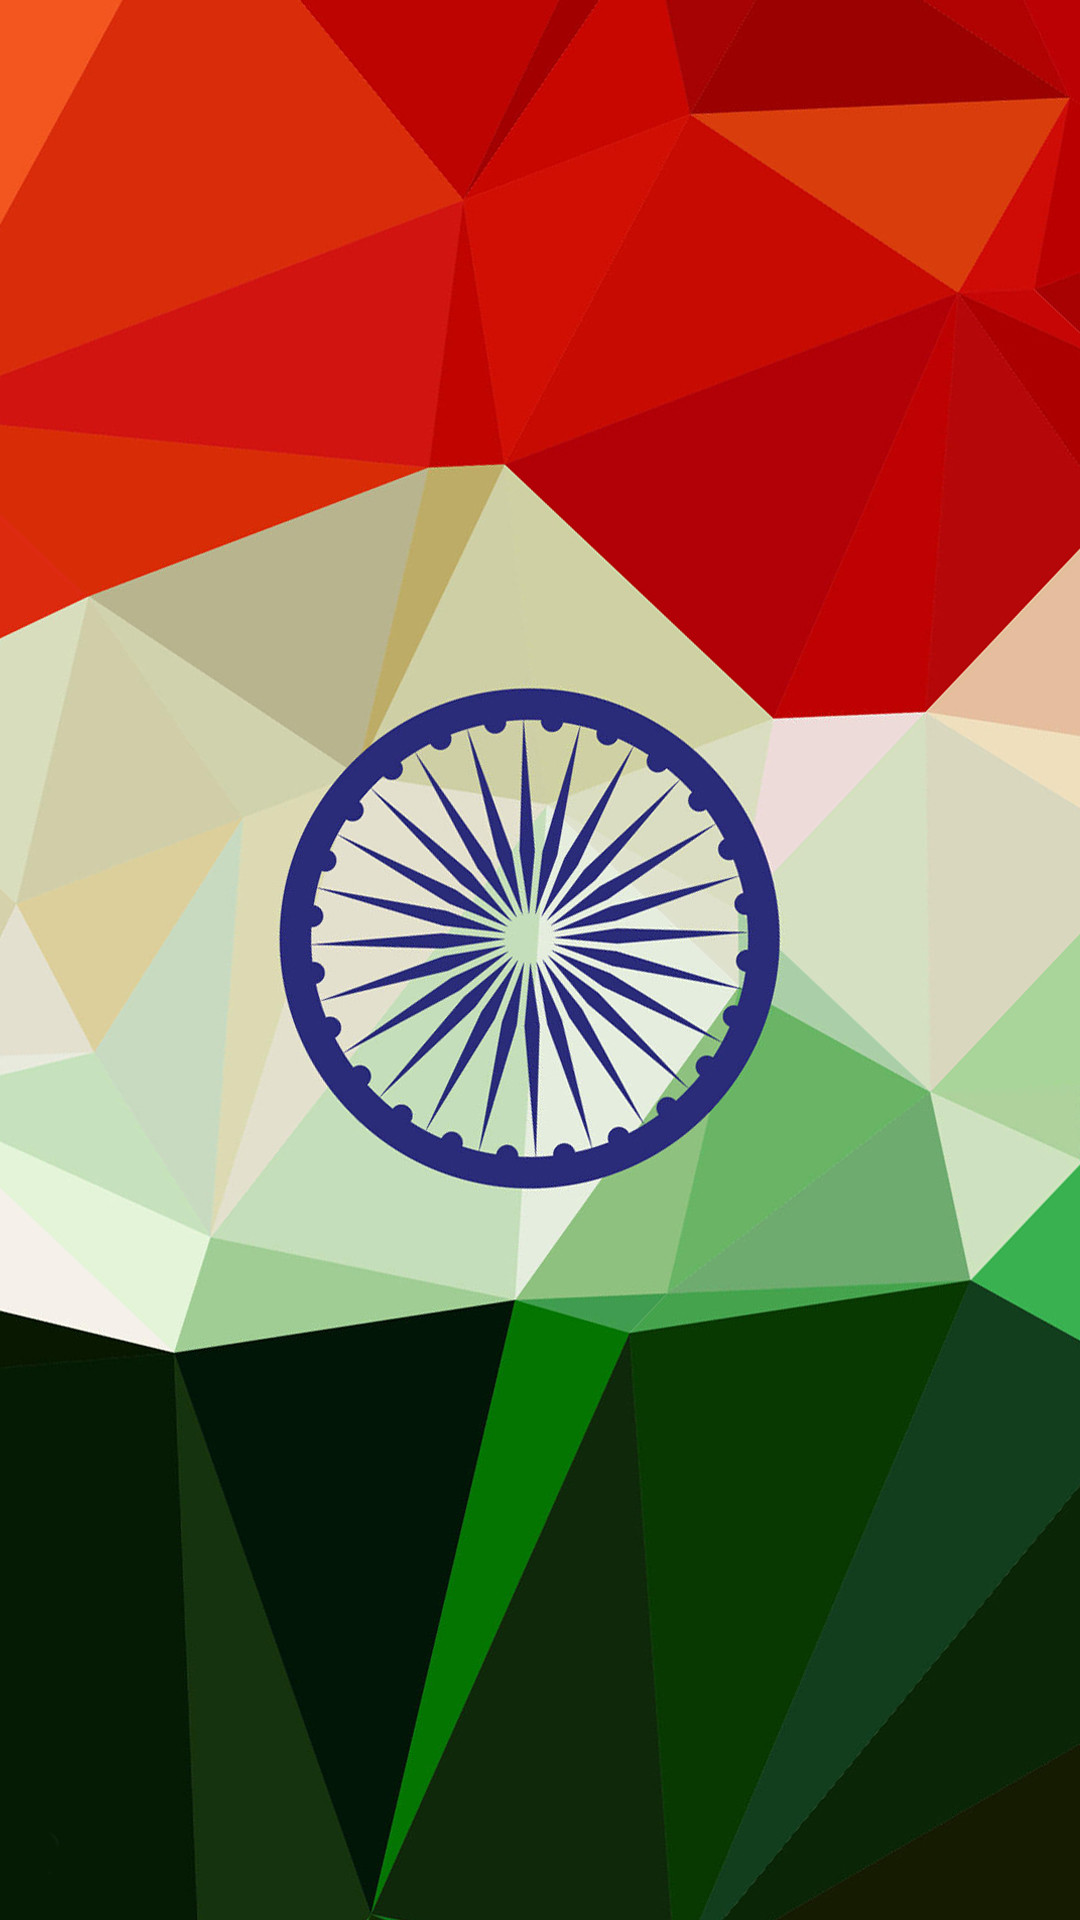 Pakistan Flag Wallpapers Hd 2014 Indian Flag Wallpaper 2018 78 Images